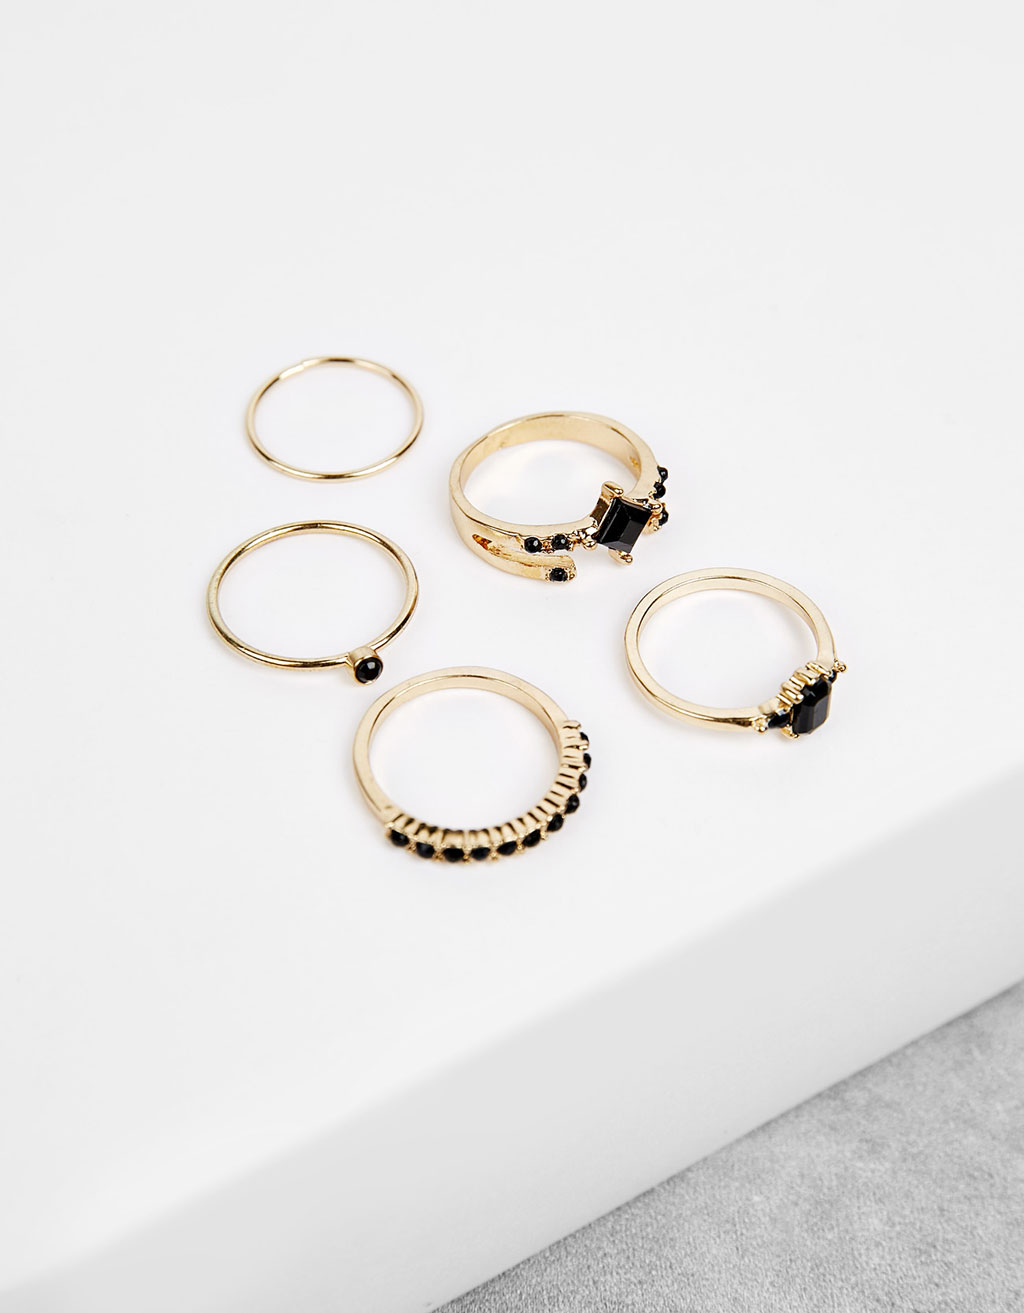 Set of black stone rings